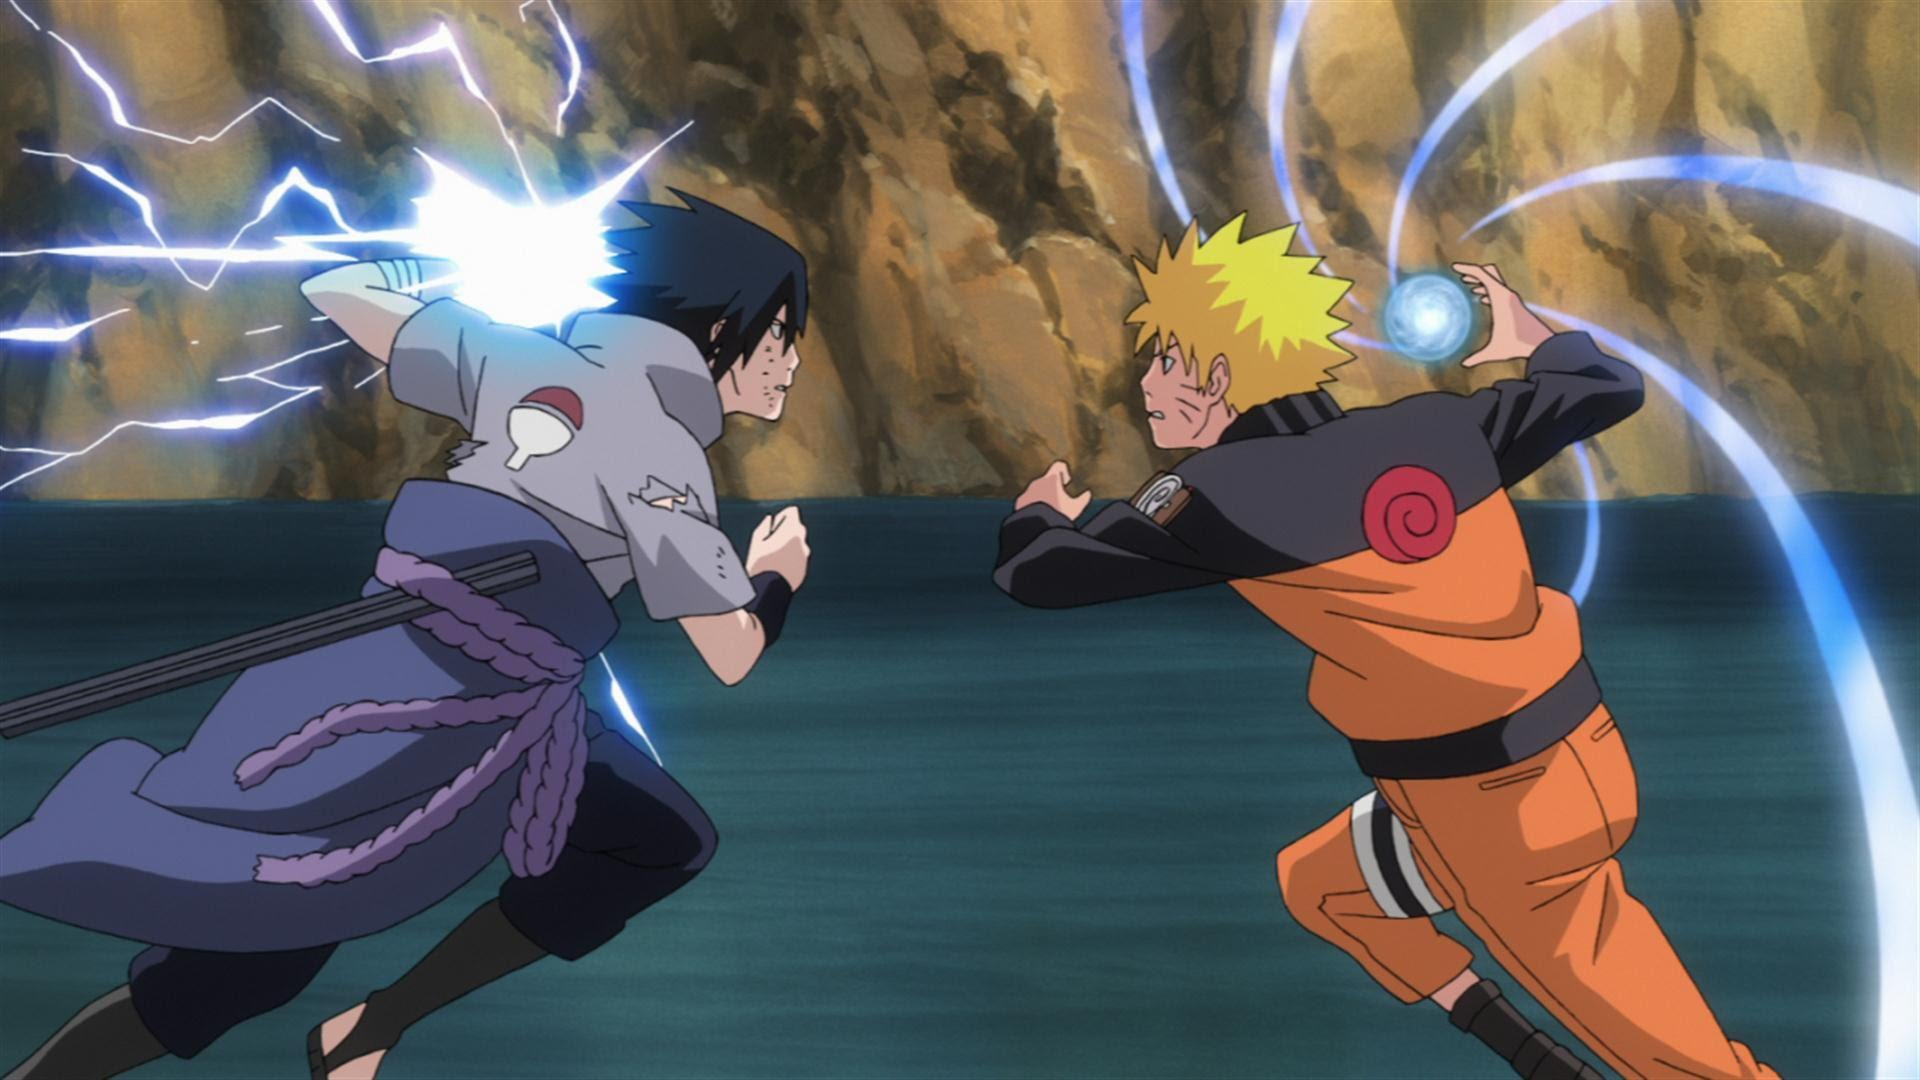 Naruto Shippuden 476-477 Review: The Final Battle | Brutal Gamer